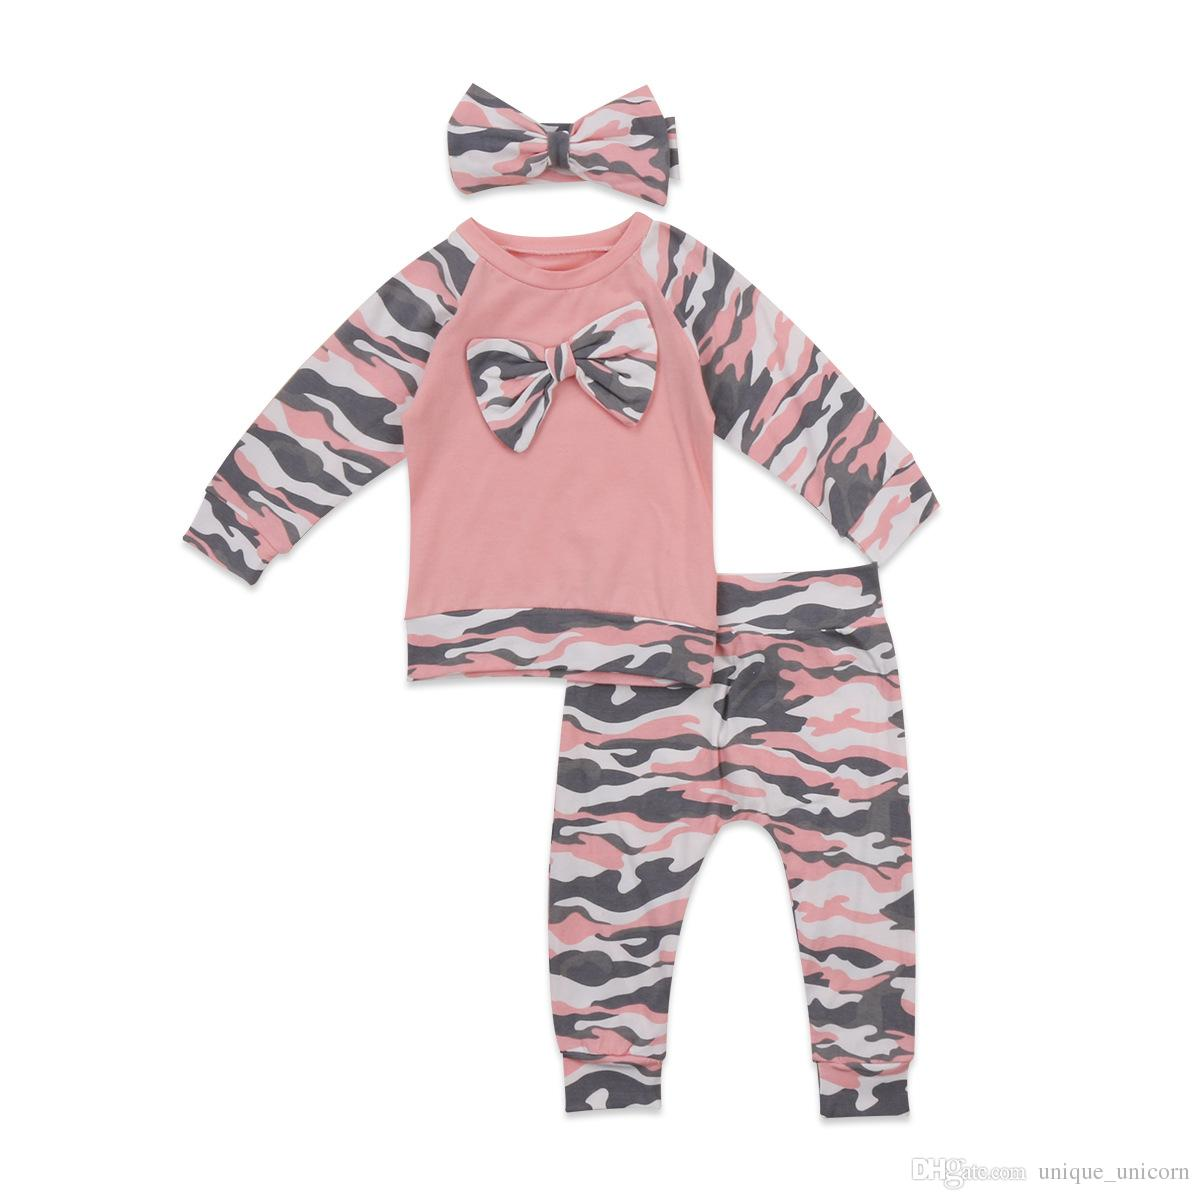 What should be the autumn overall for the newborn